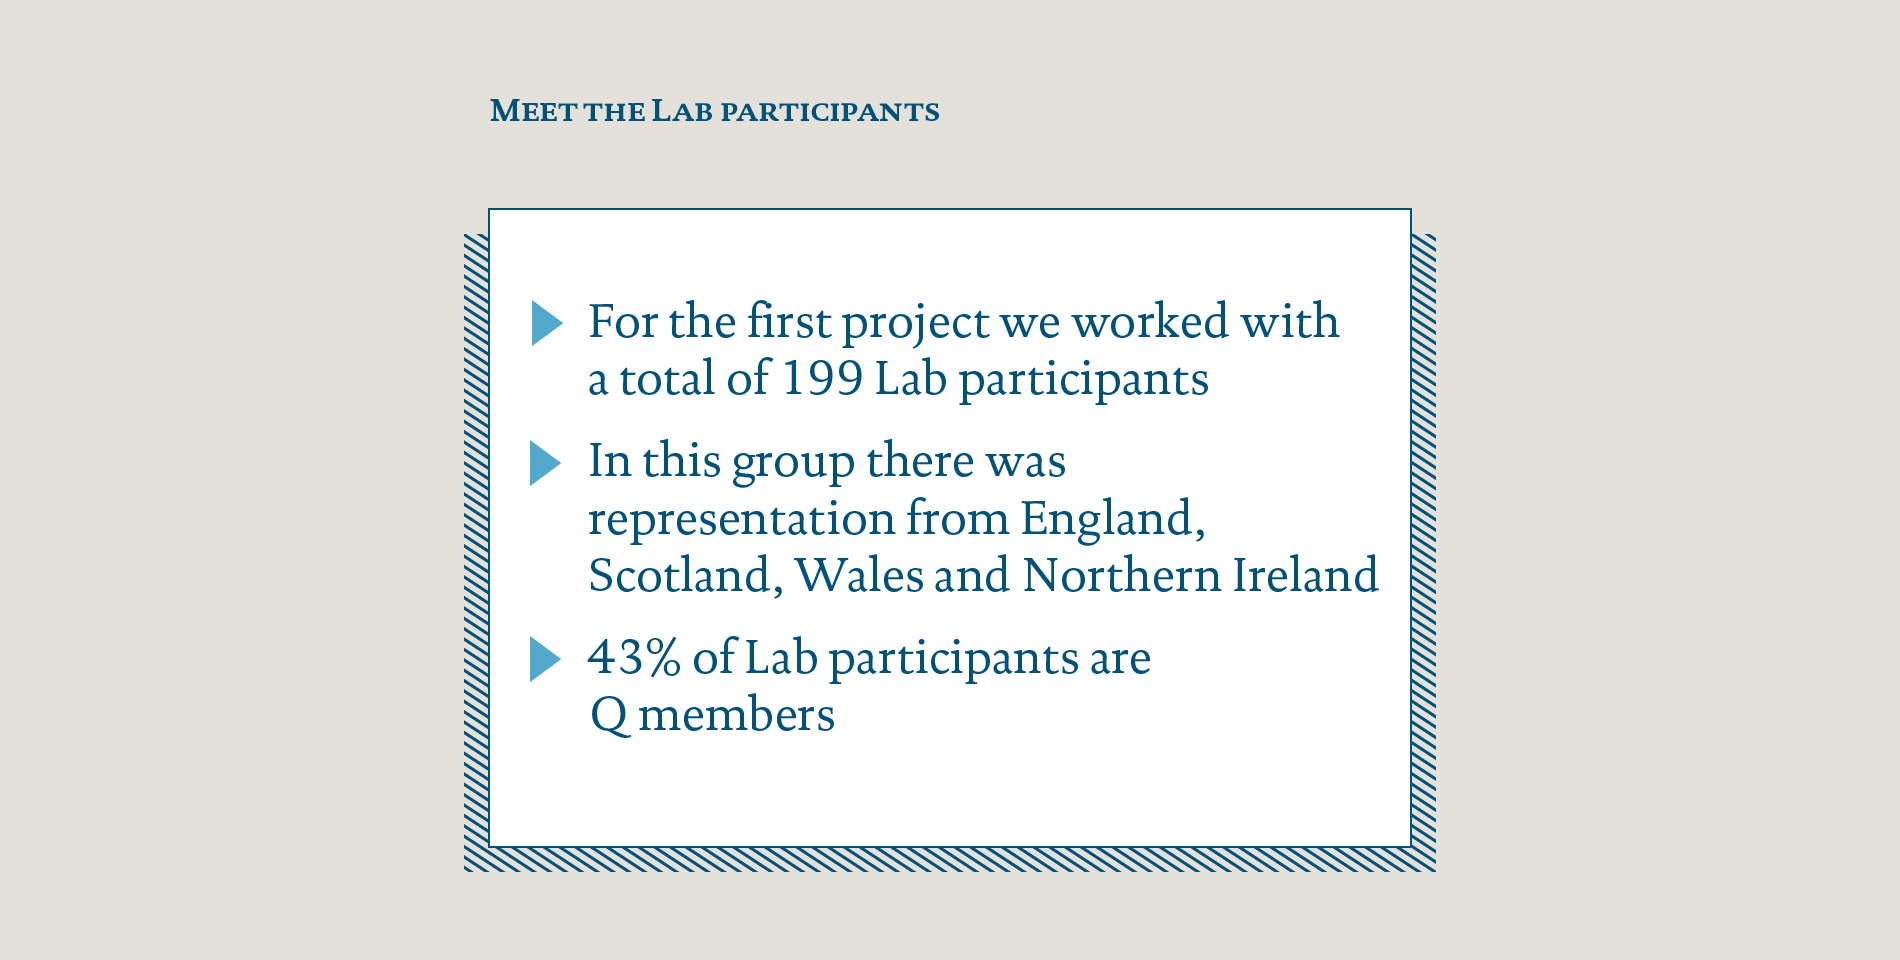 A description of who we worked with on the first Q Improvement Lab project